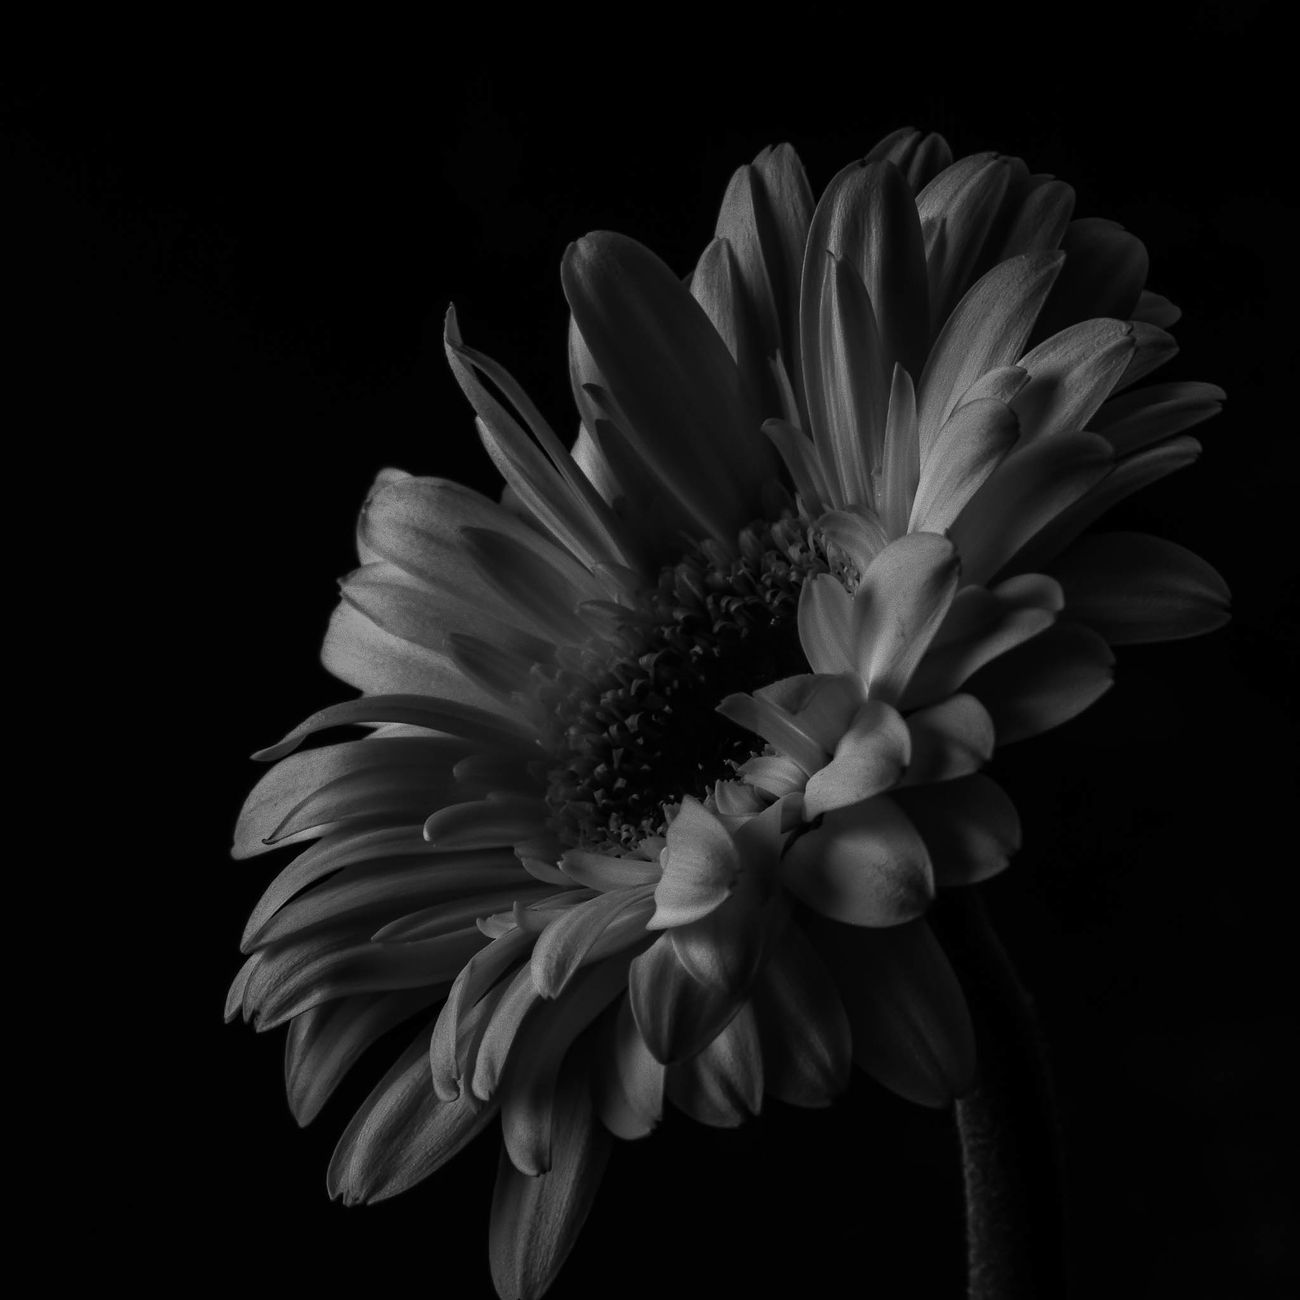 A black and white flower